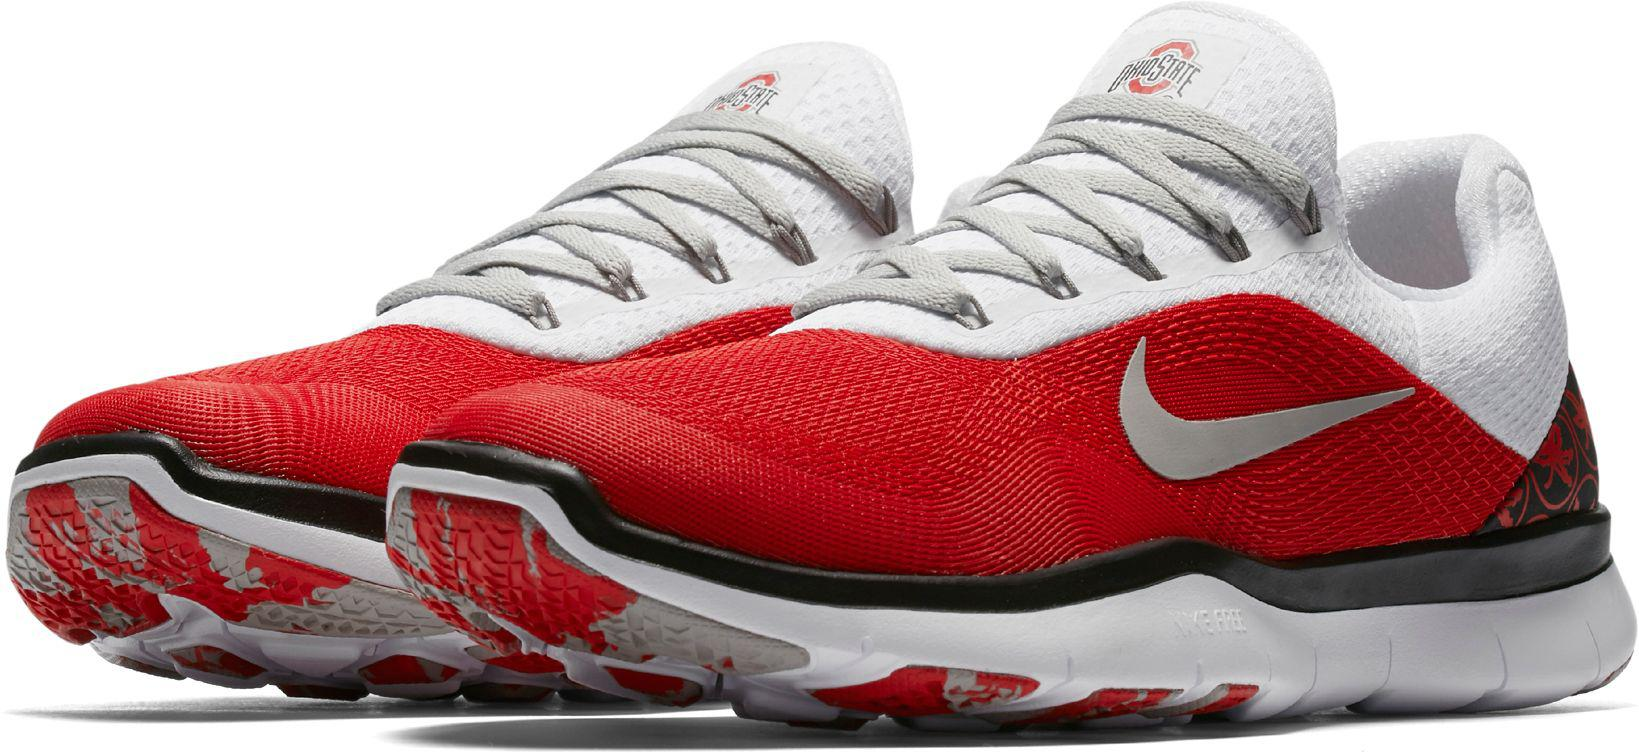 201b13da2051 Nike - Red Free Trainer V7 Week Zero Ohio State Edition Training Shoes for  Men -